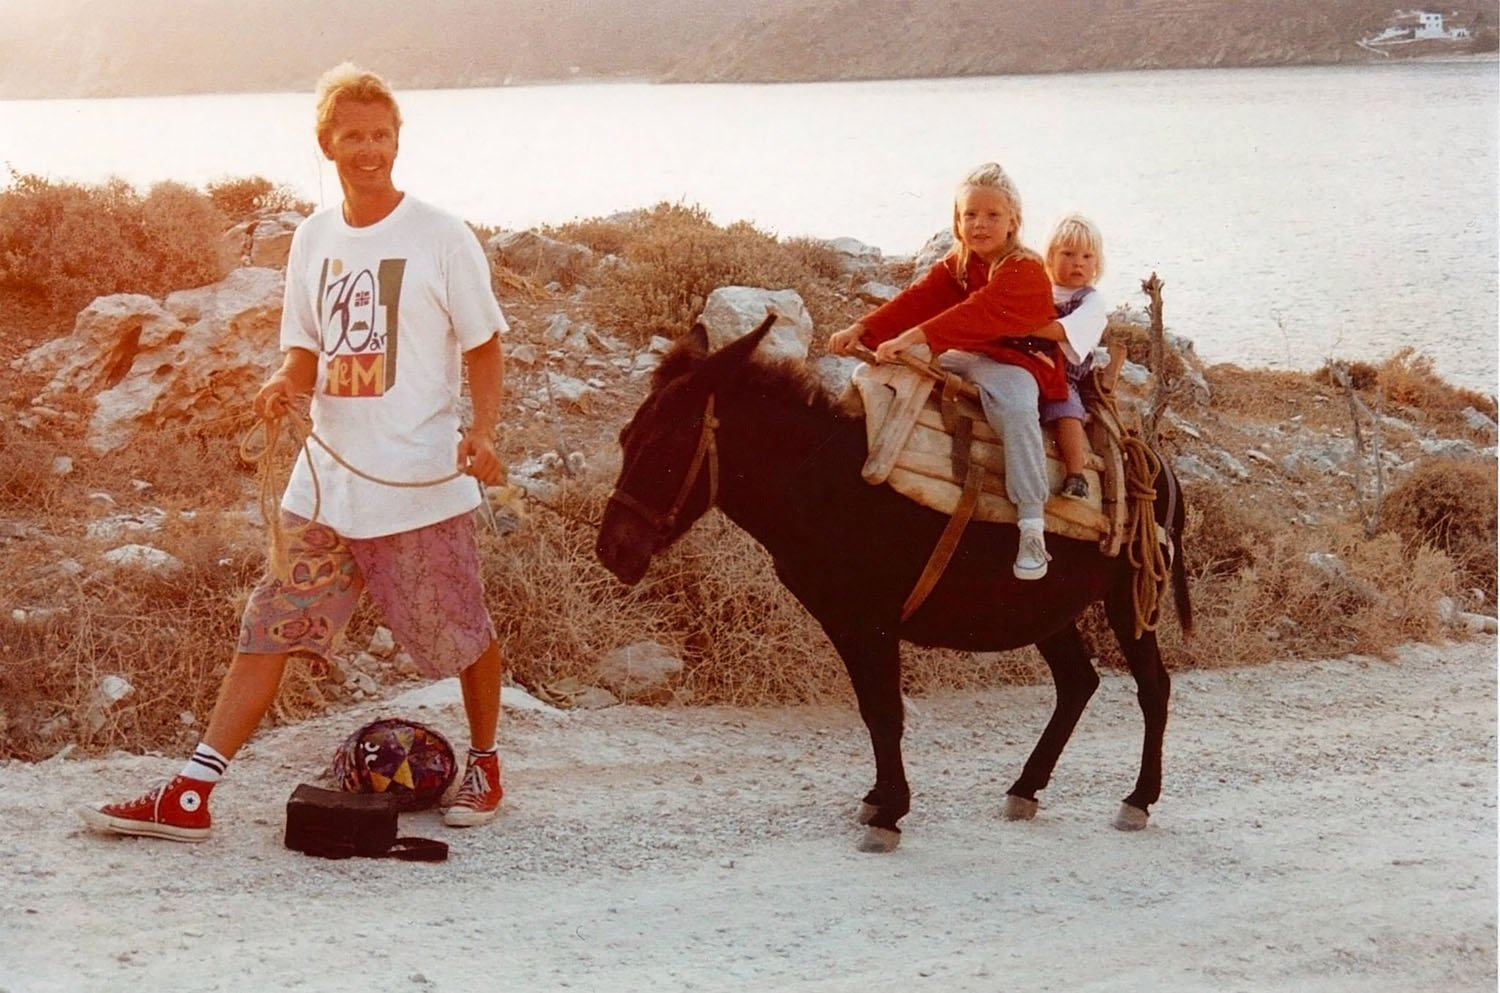 Tom with his daughters on the donkey Nula